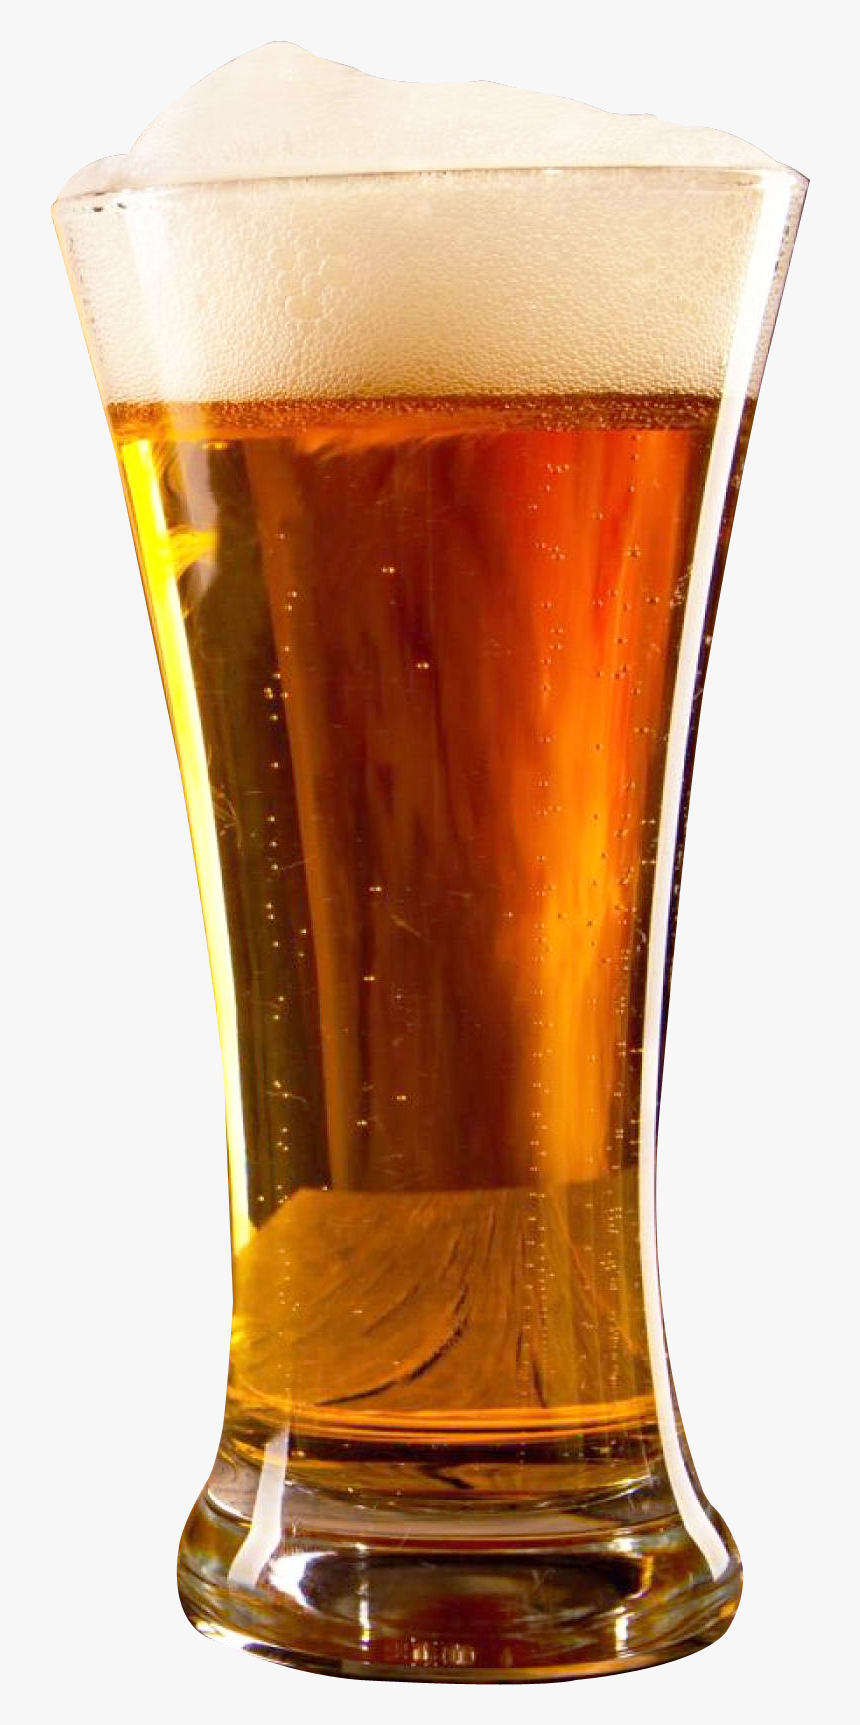 Beer In A Glass Png, Transparent Png, Free Download